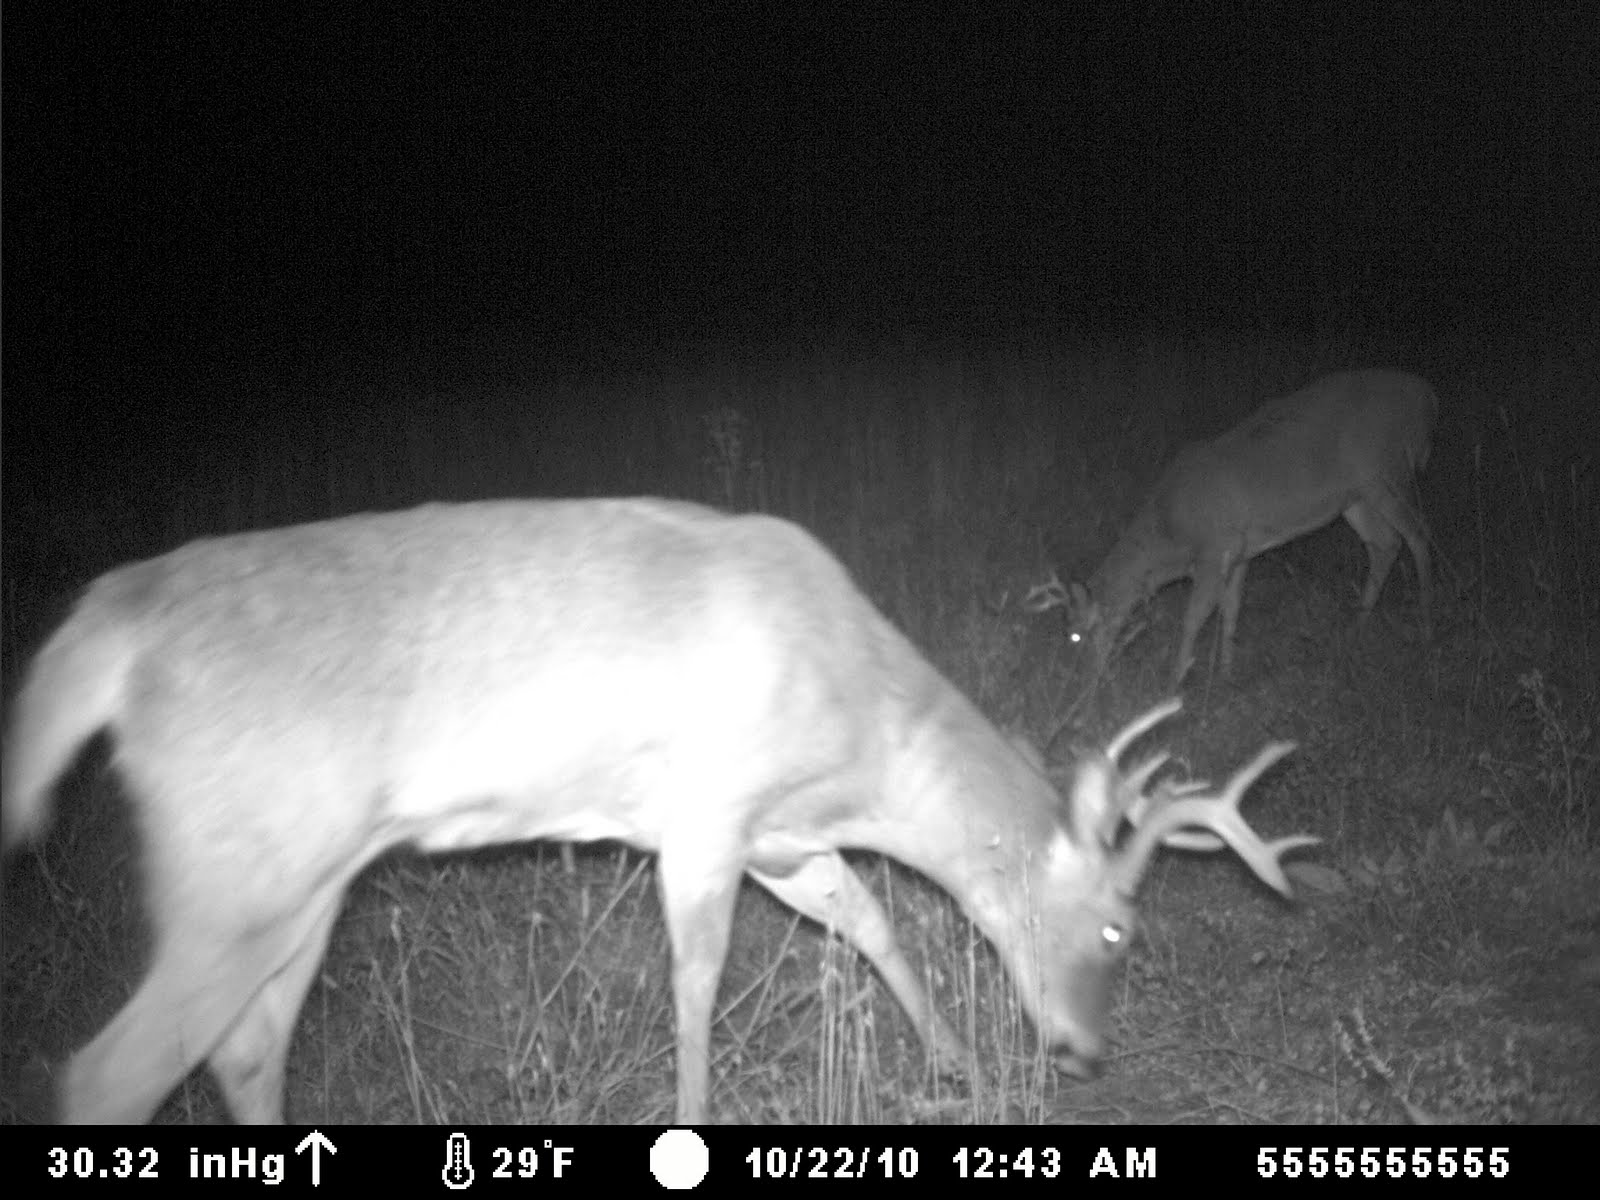 Trail Cam Pics Of Deer http://naturesnectar.blogspot.com/2010/10/trail-camera-pics.html